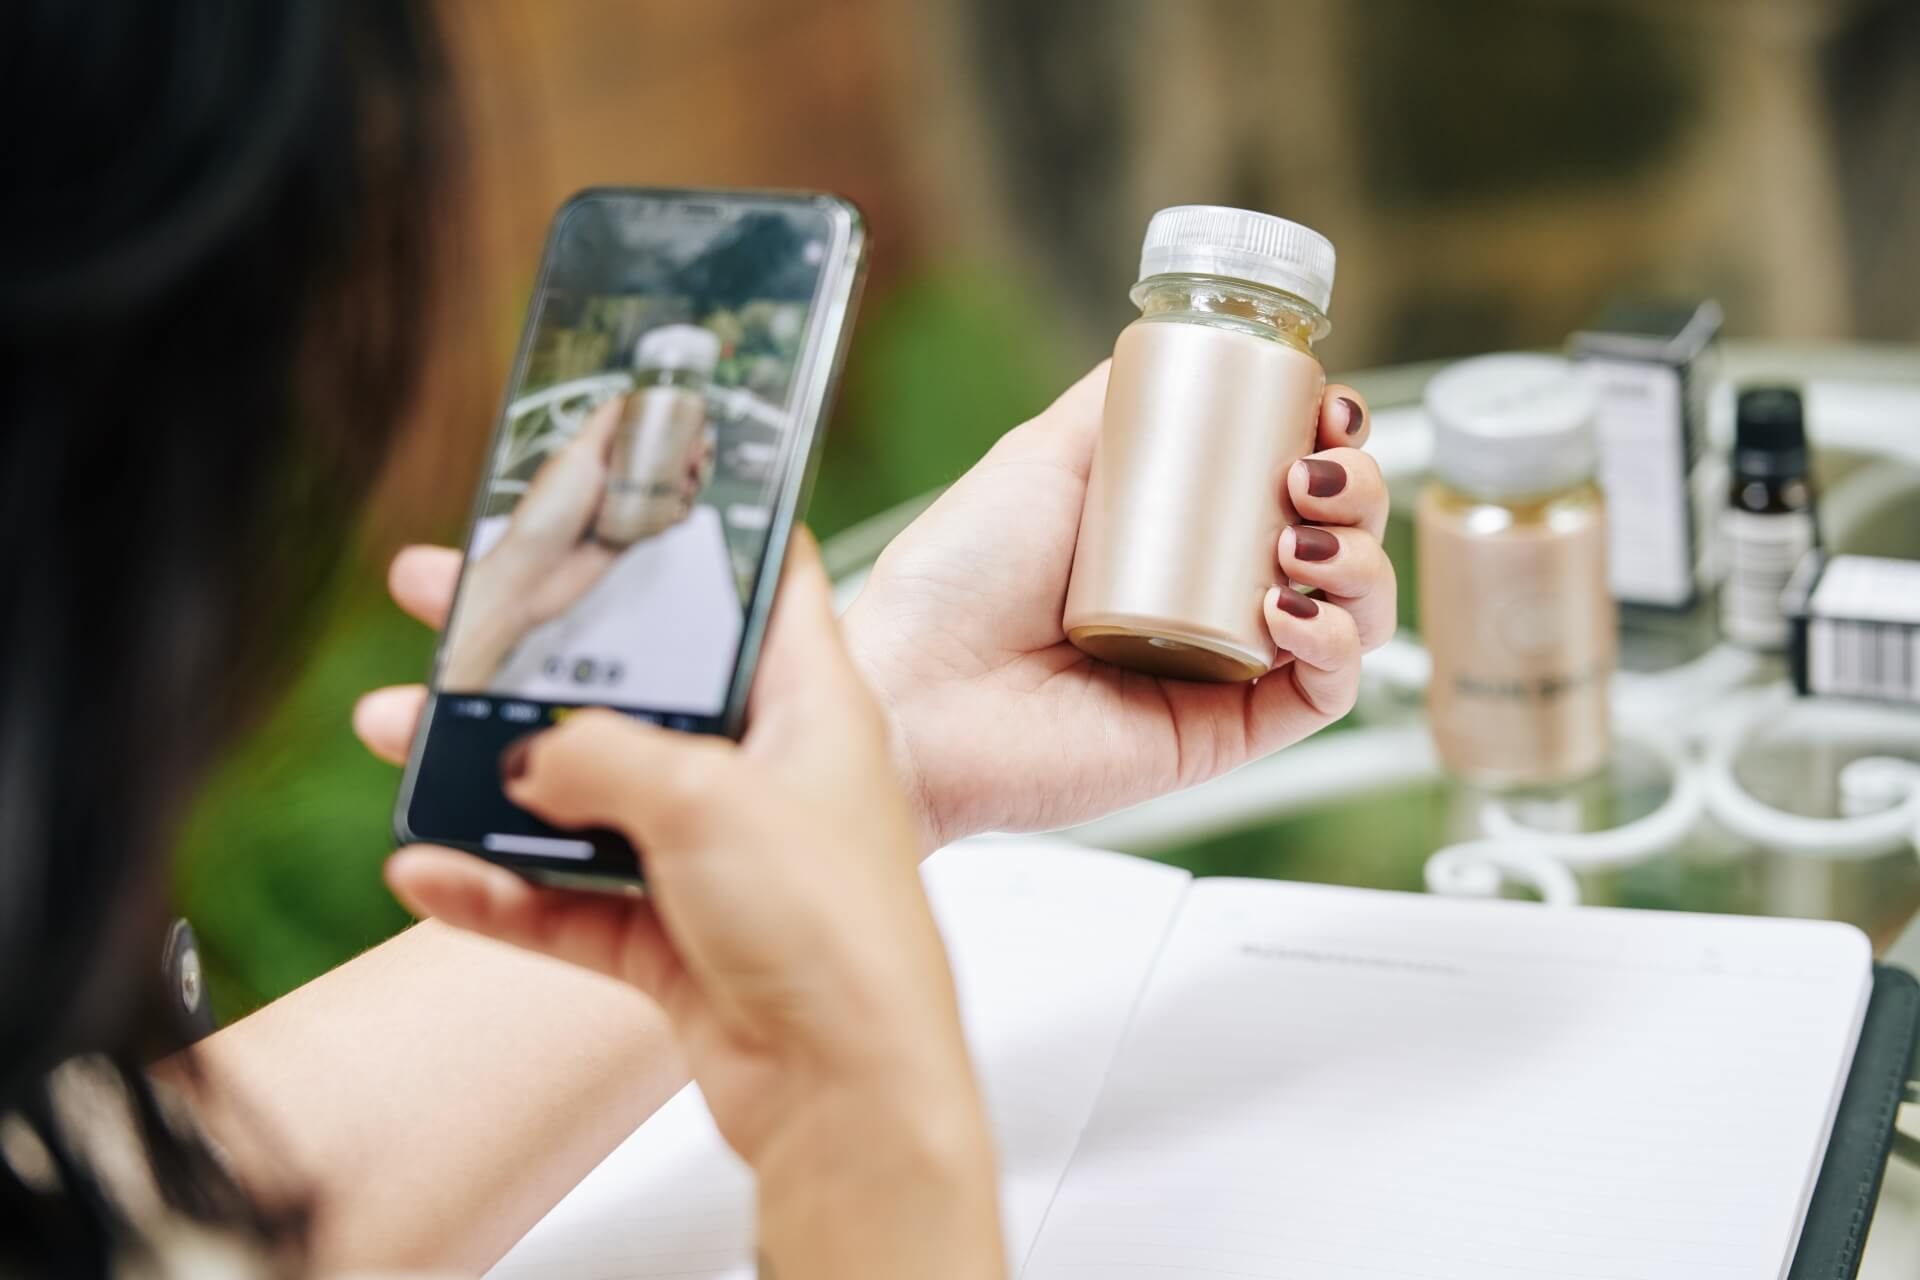 Woman takes a photo of some skin lotion